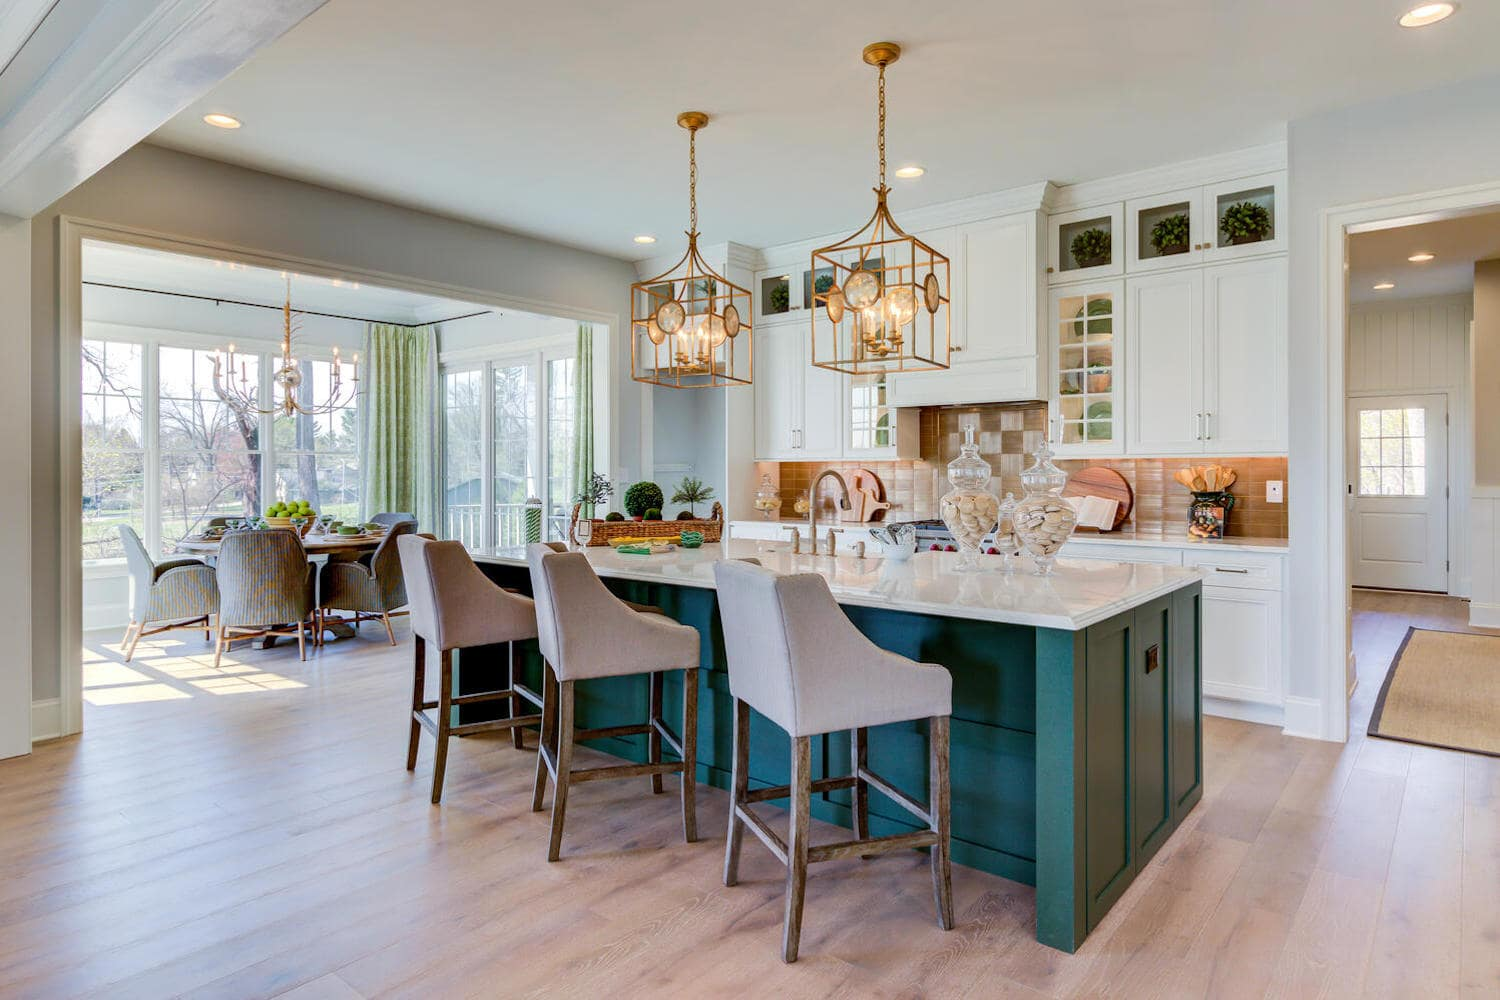 Kitchen of a new home from Bentley Homes.